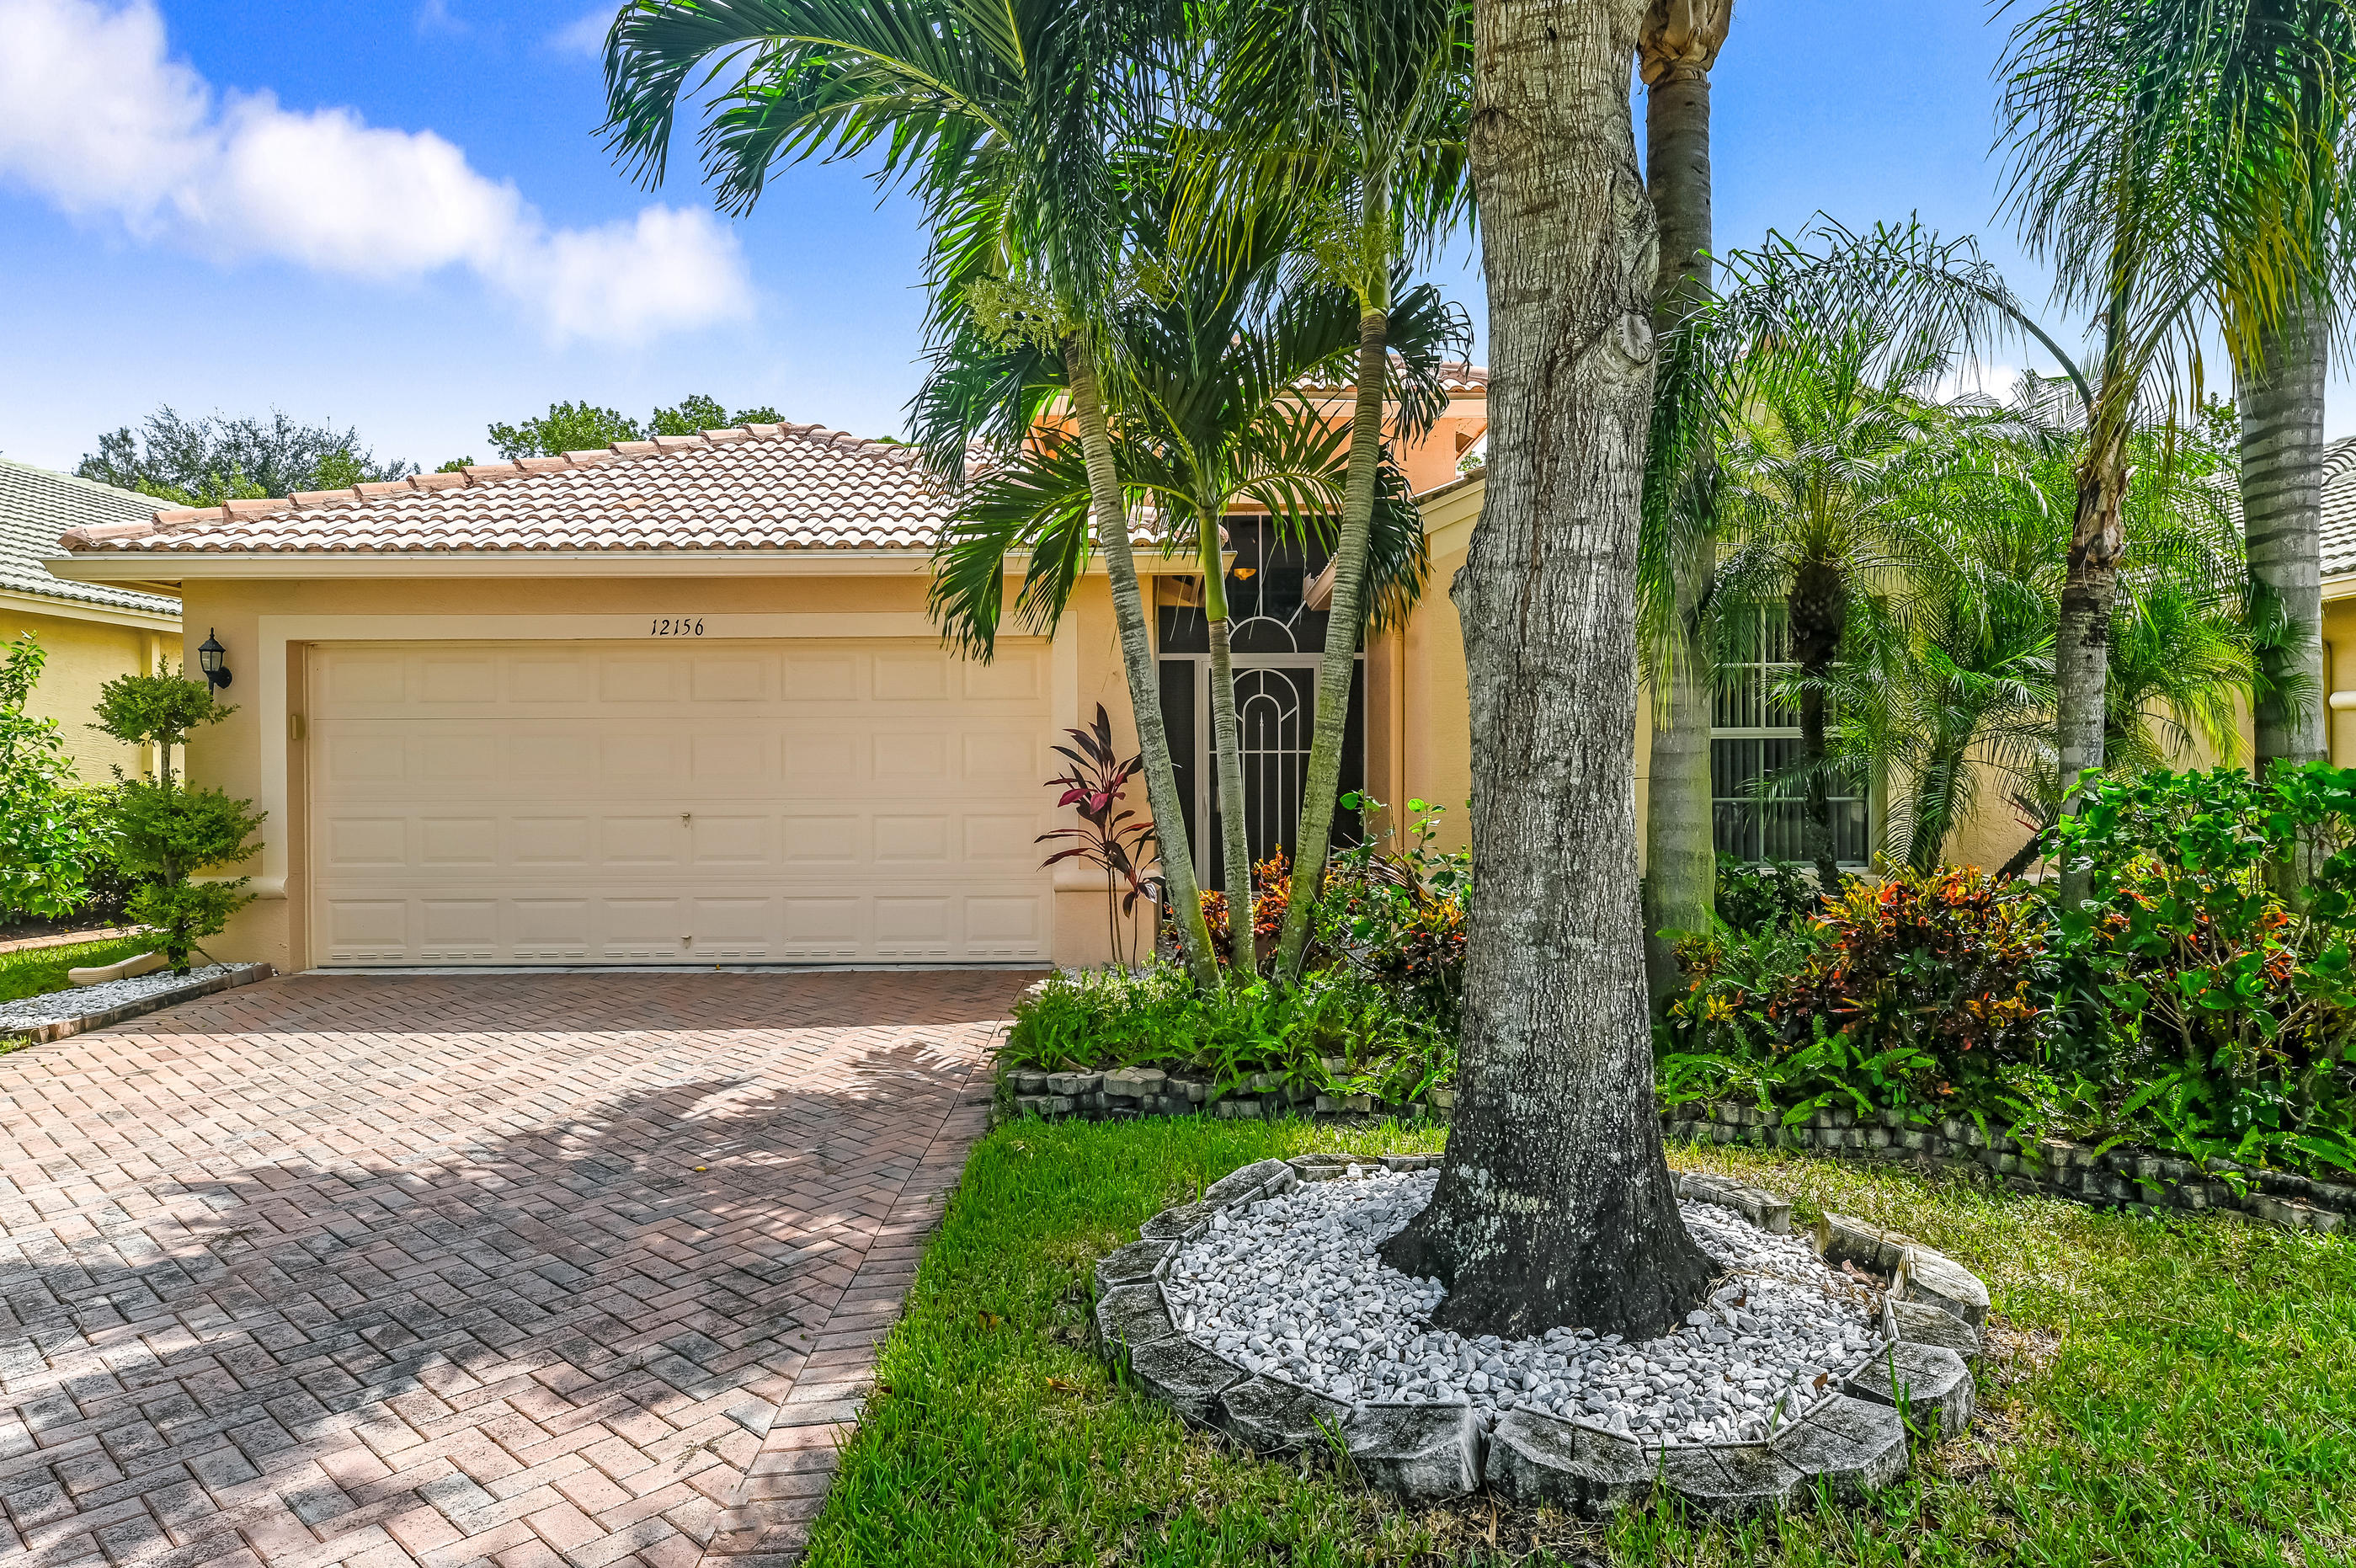 12156 La Vita Way Boynton Beach, FL 33437